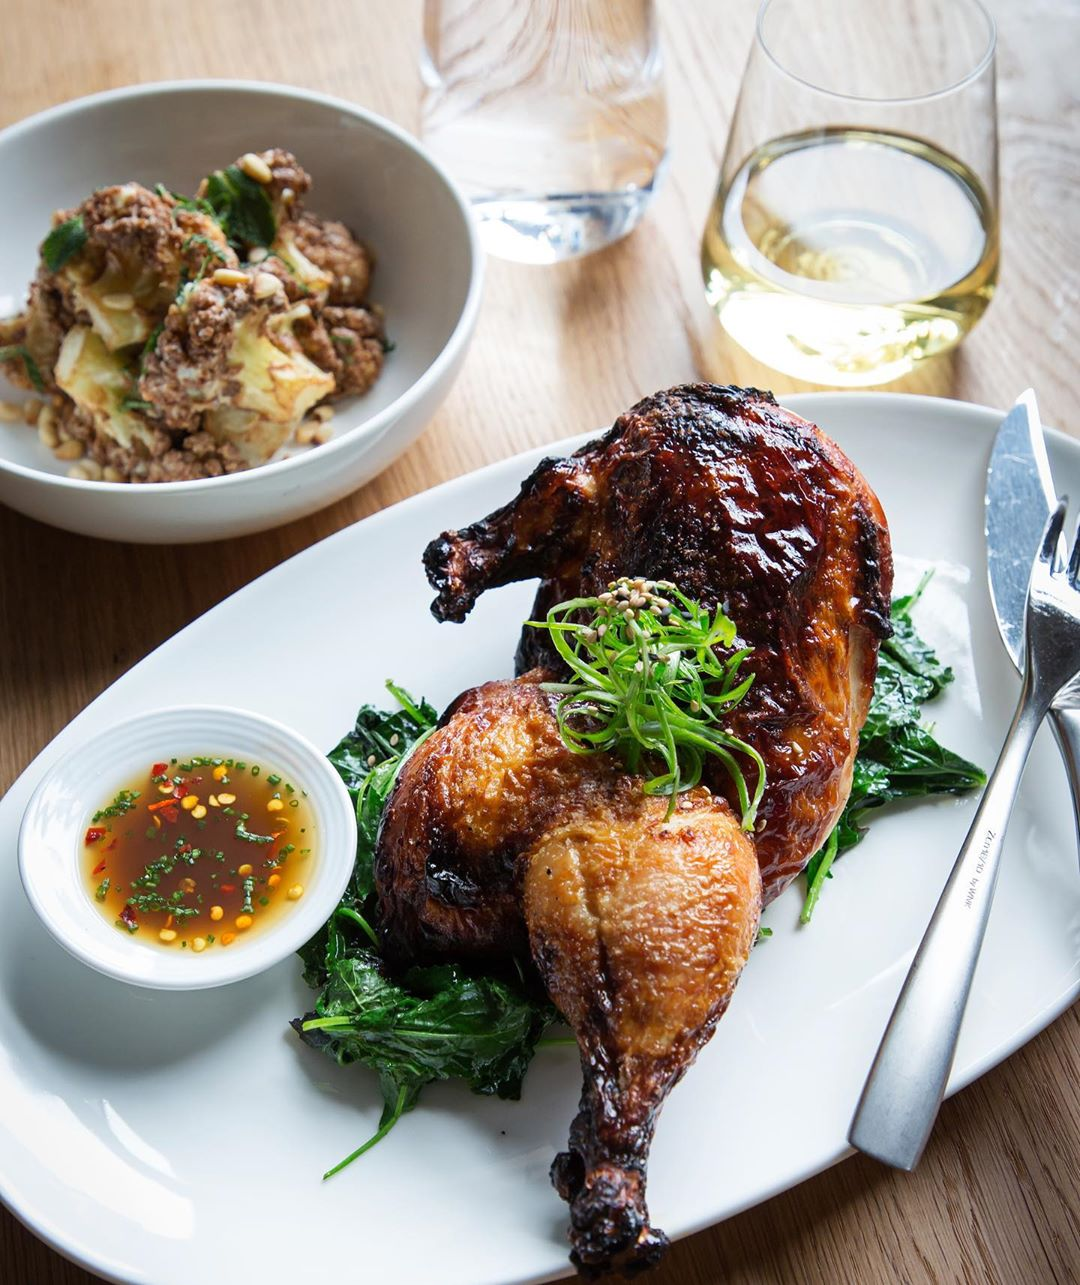 Spice-Roasted Chicken from Restaurant Chloe at The Yards DC